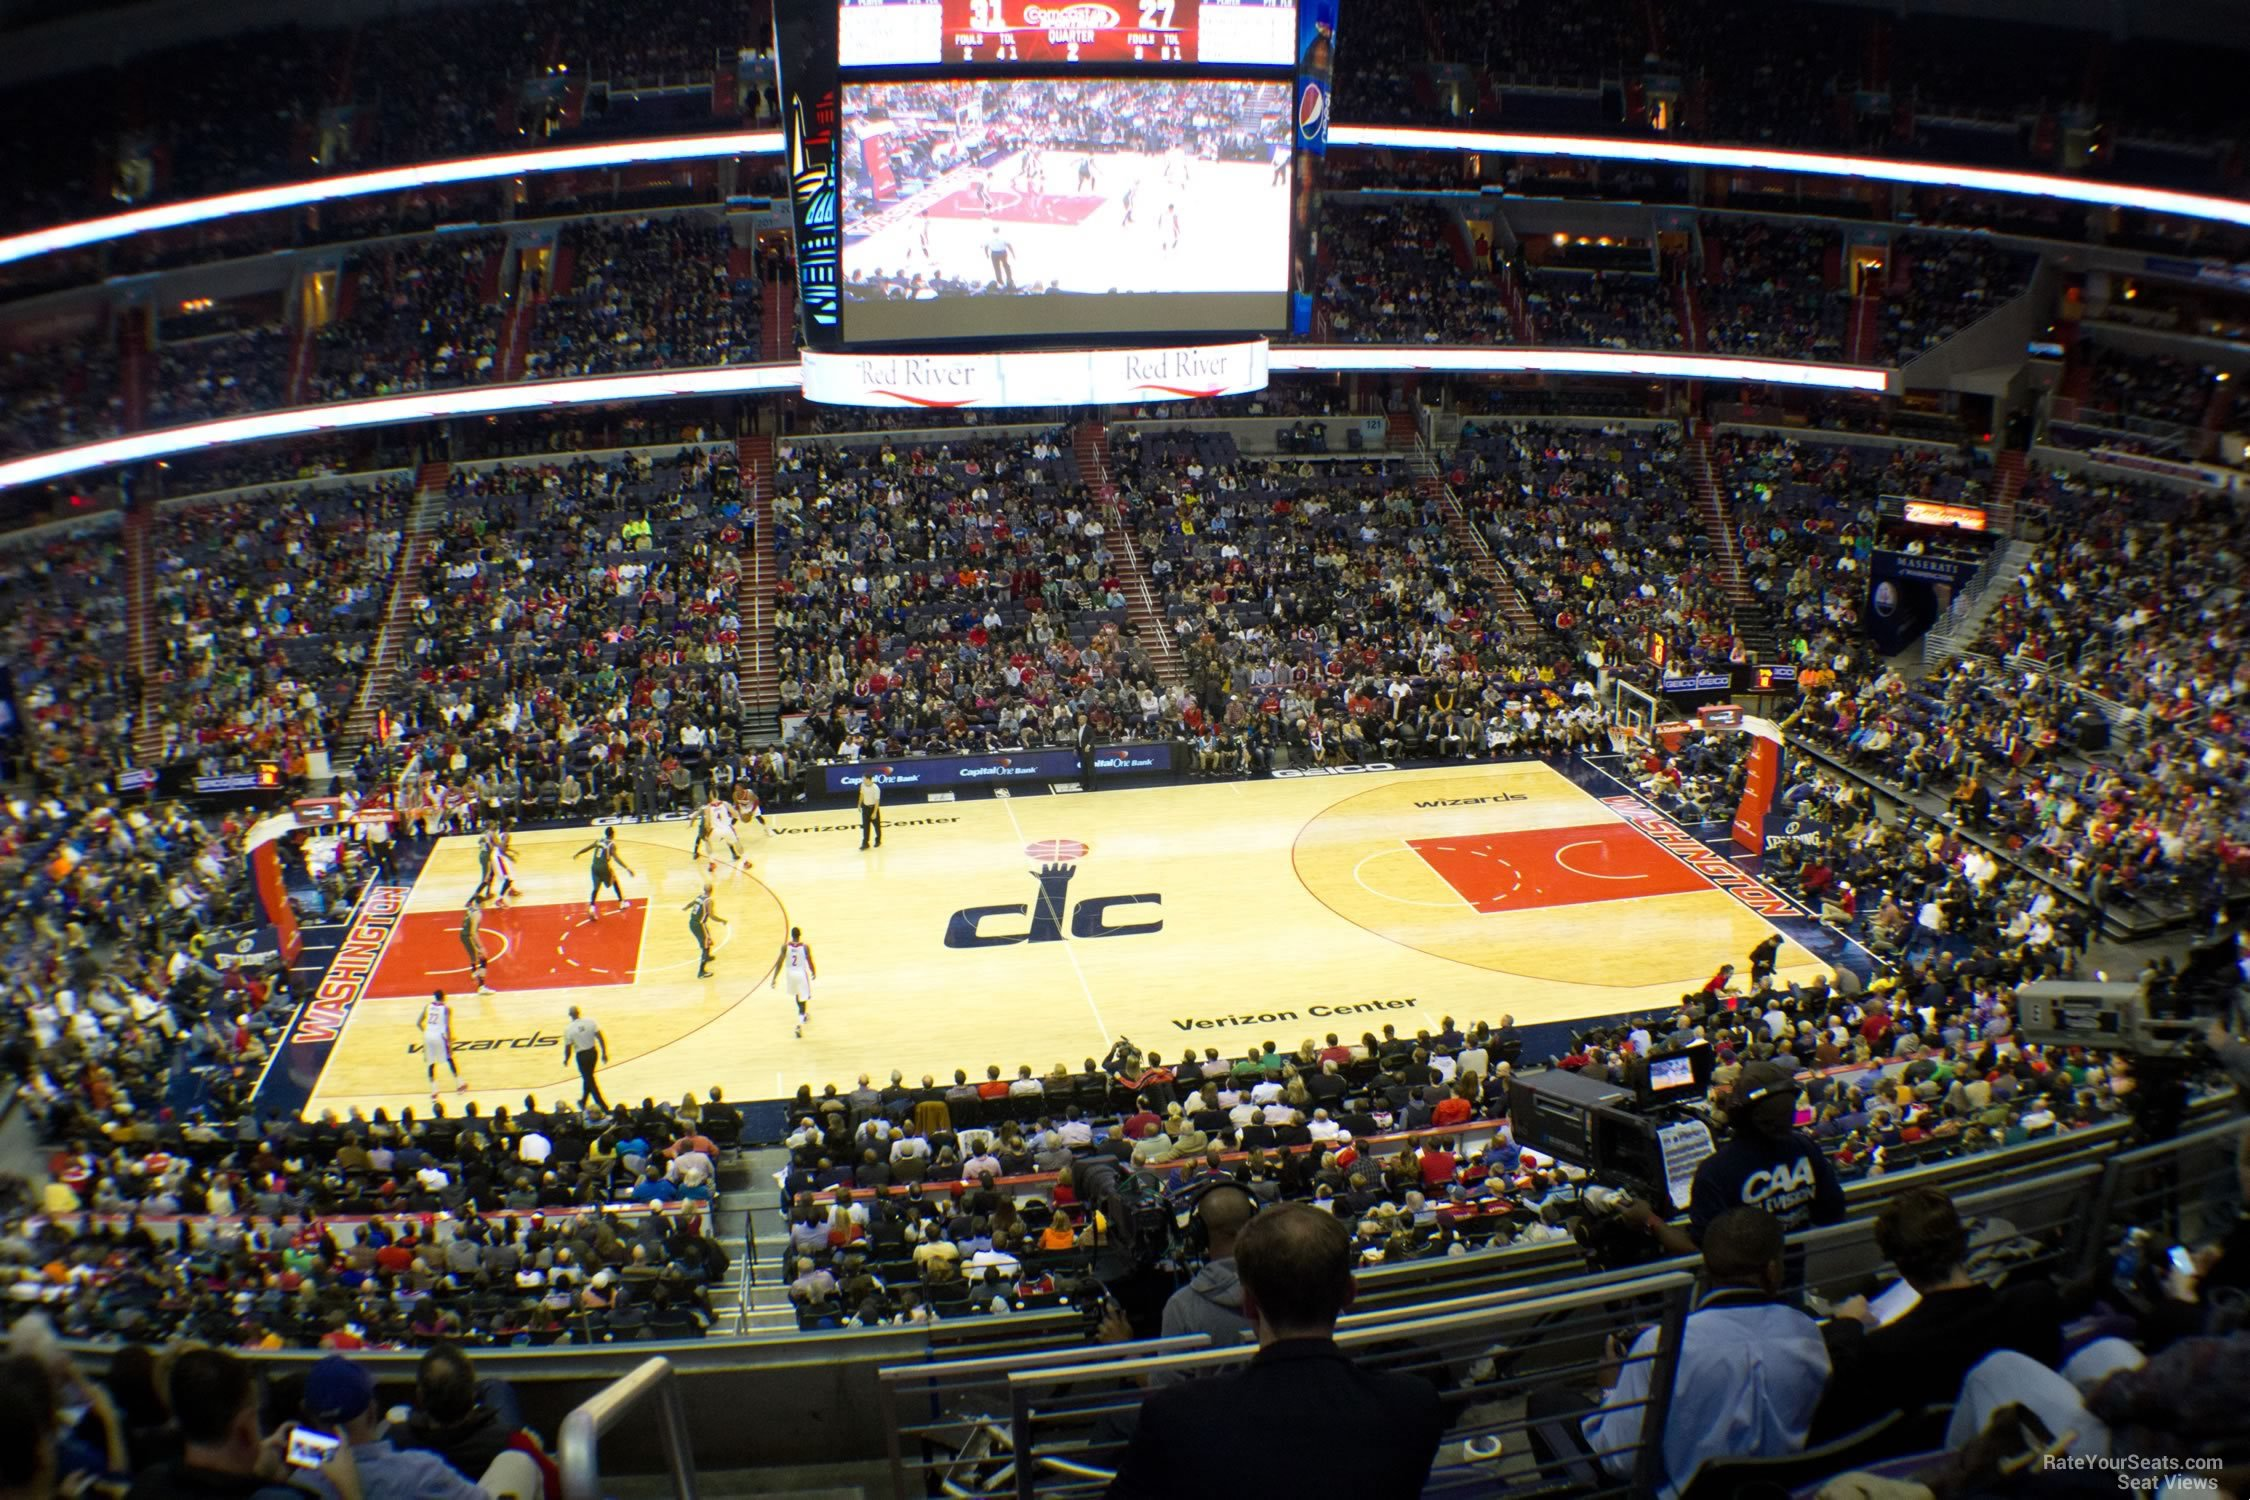 Capital One compró los naming rights del estadio de los Washington Wizards